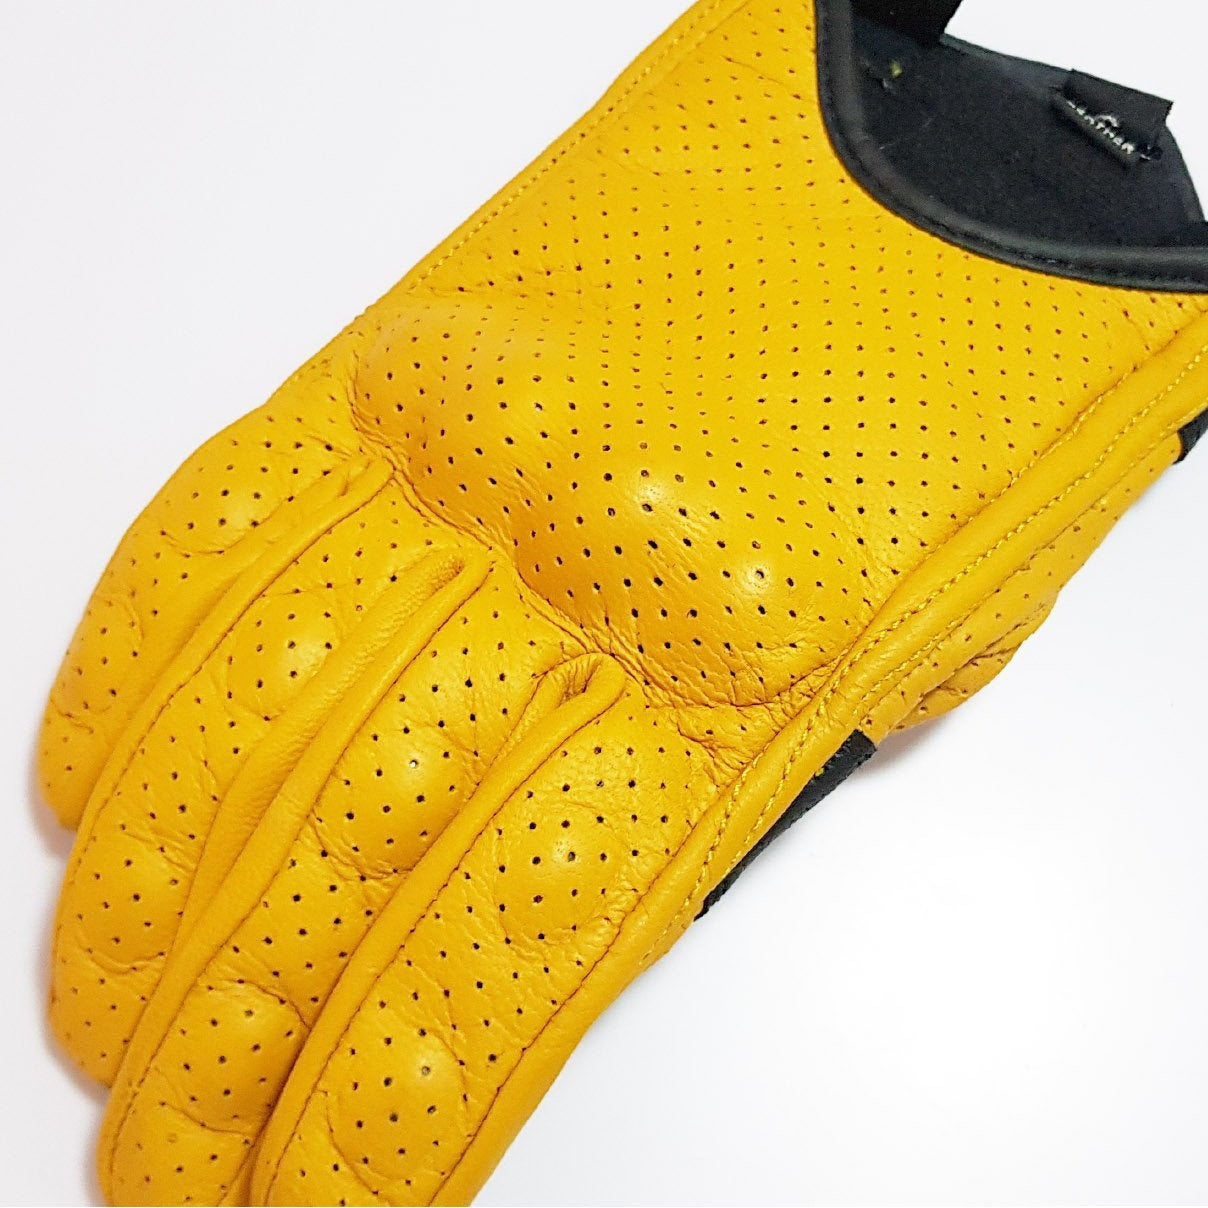 Yellow Summer Gloves - Concept Racer